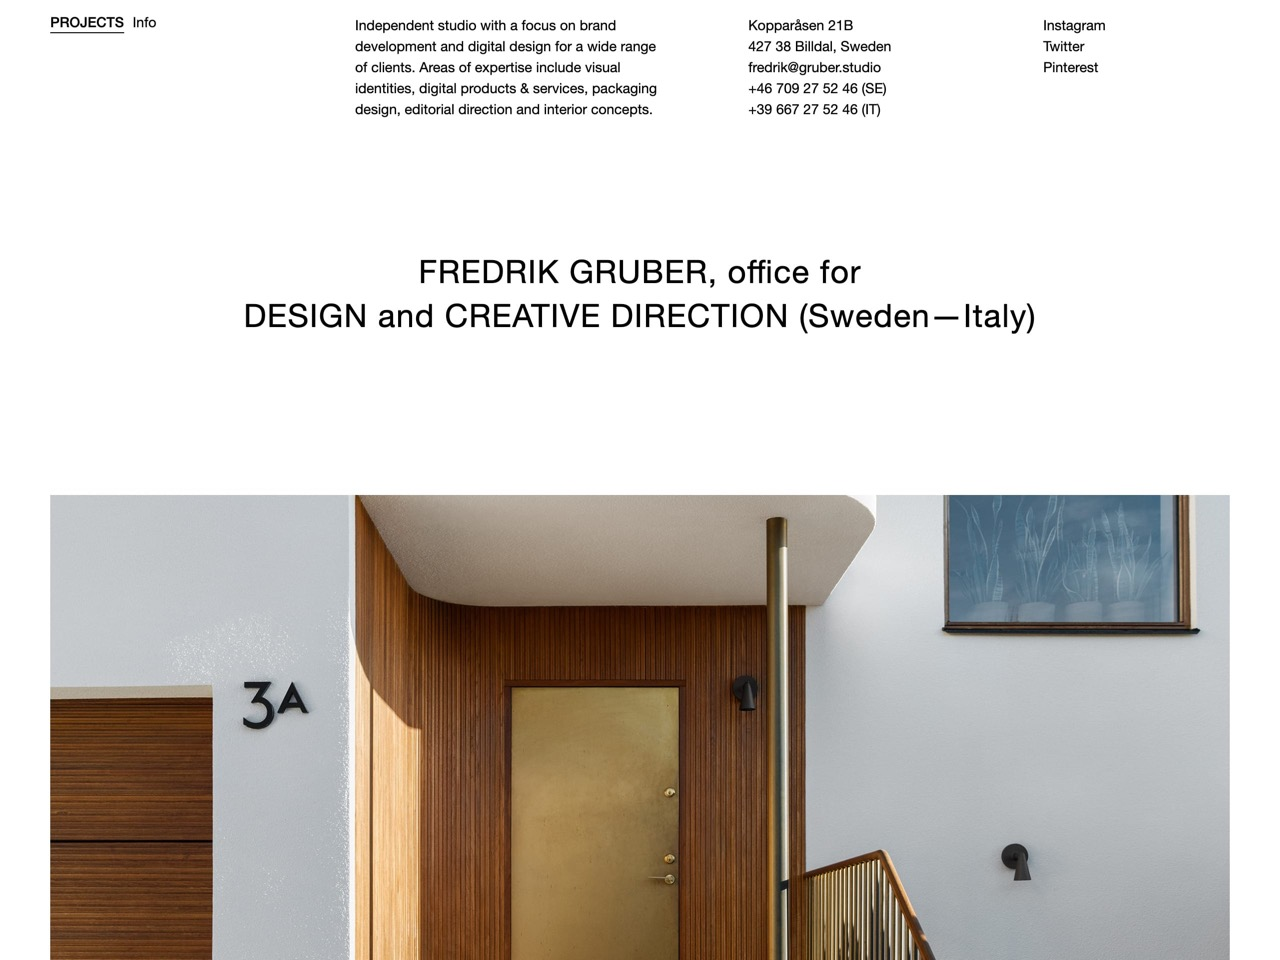 Fredrik gruber   office for design   creative direction